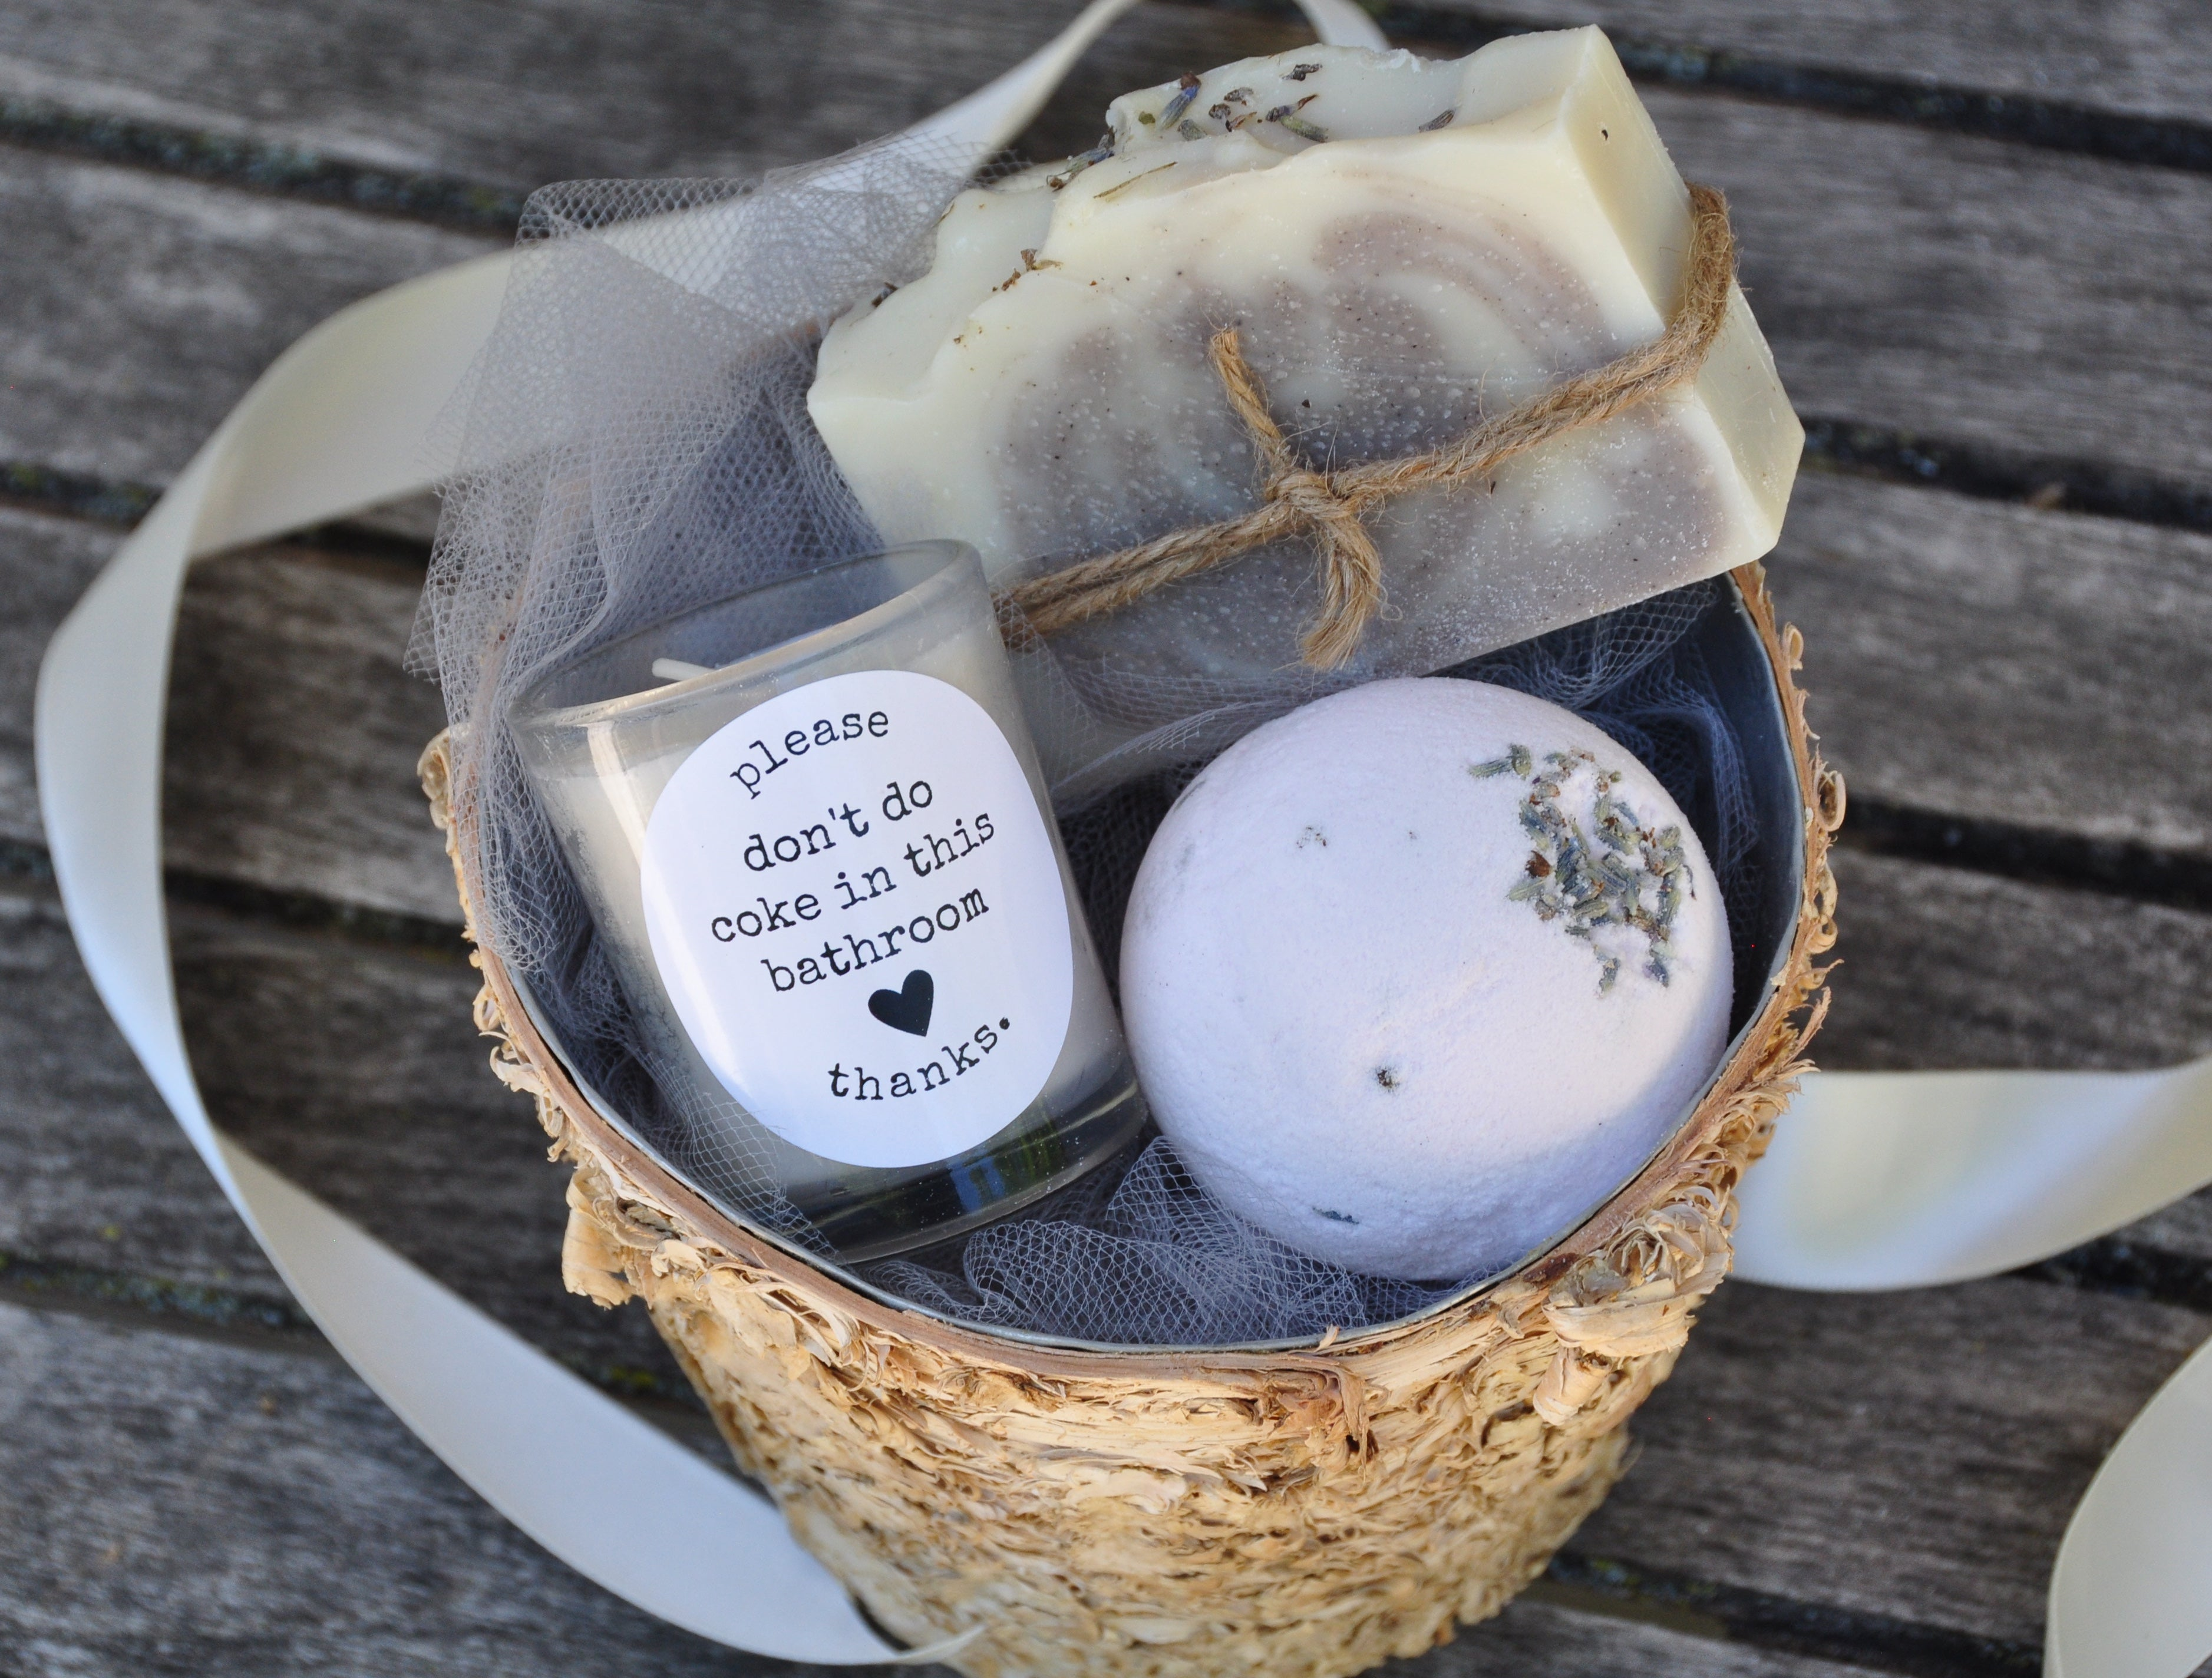 new home housewarming gift what to bring to a housewarming party bath and body gift basket